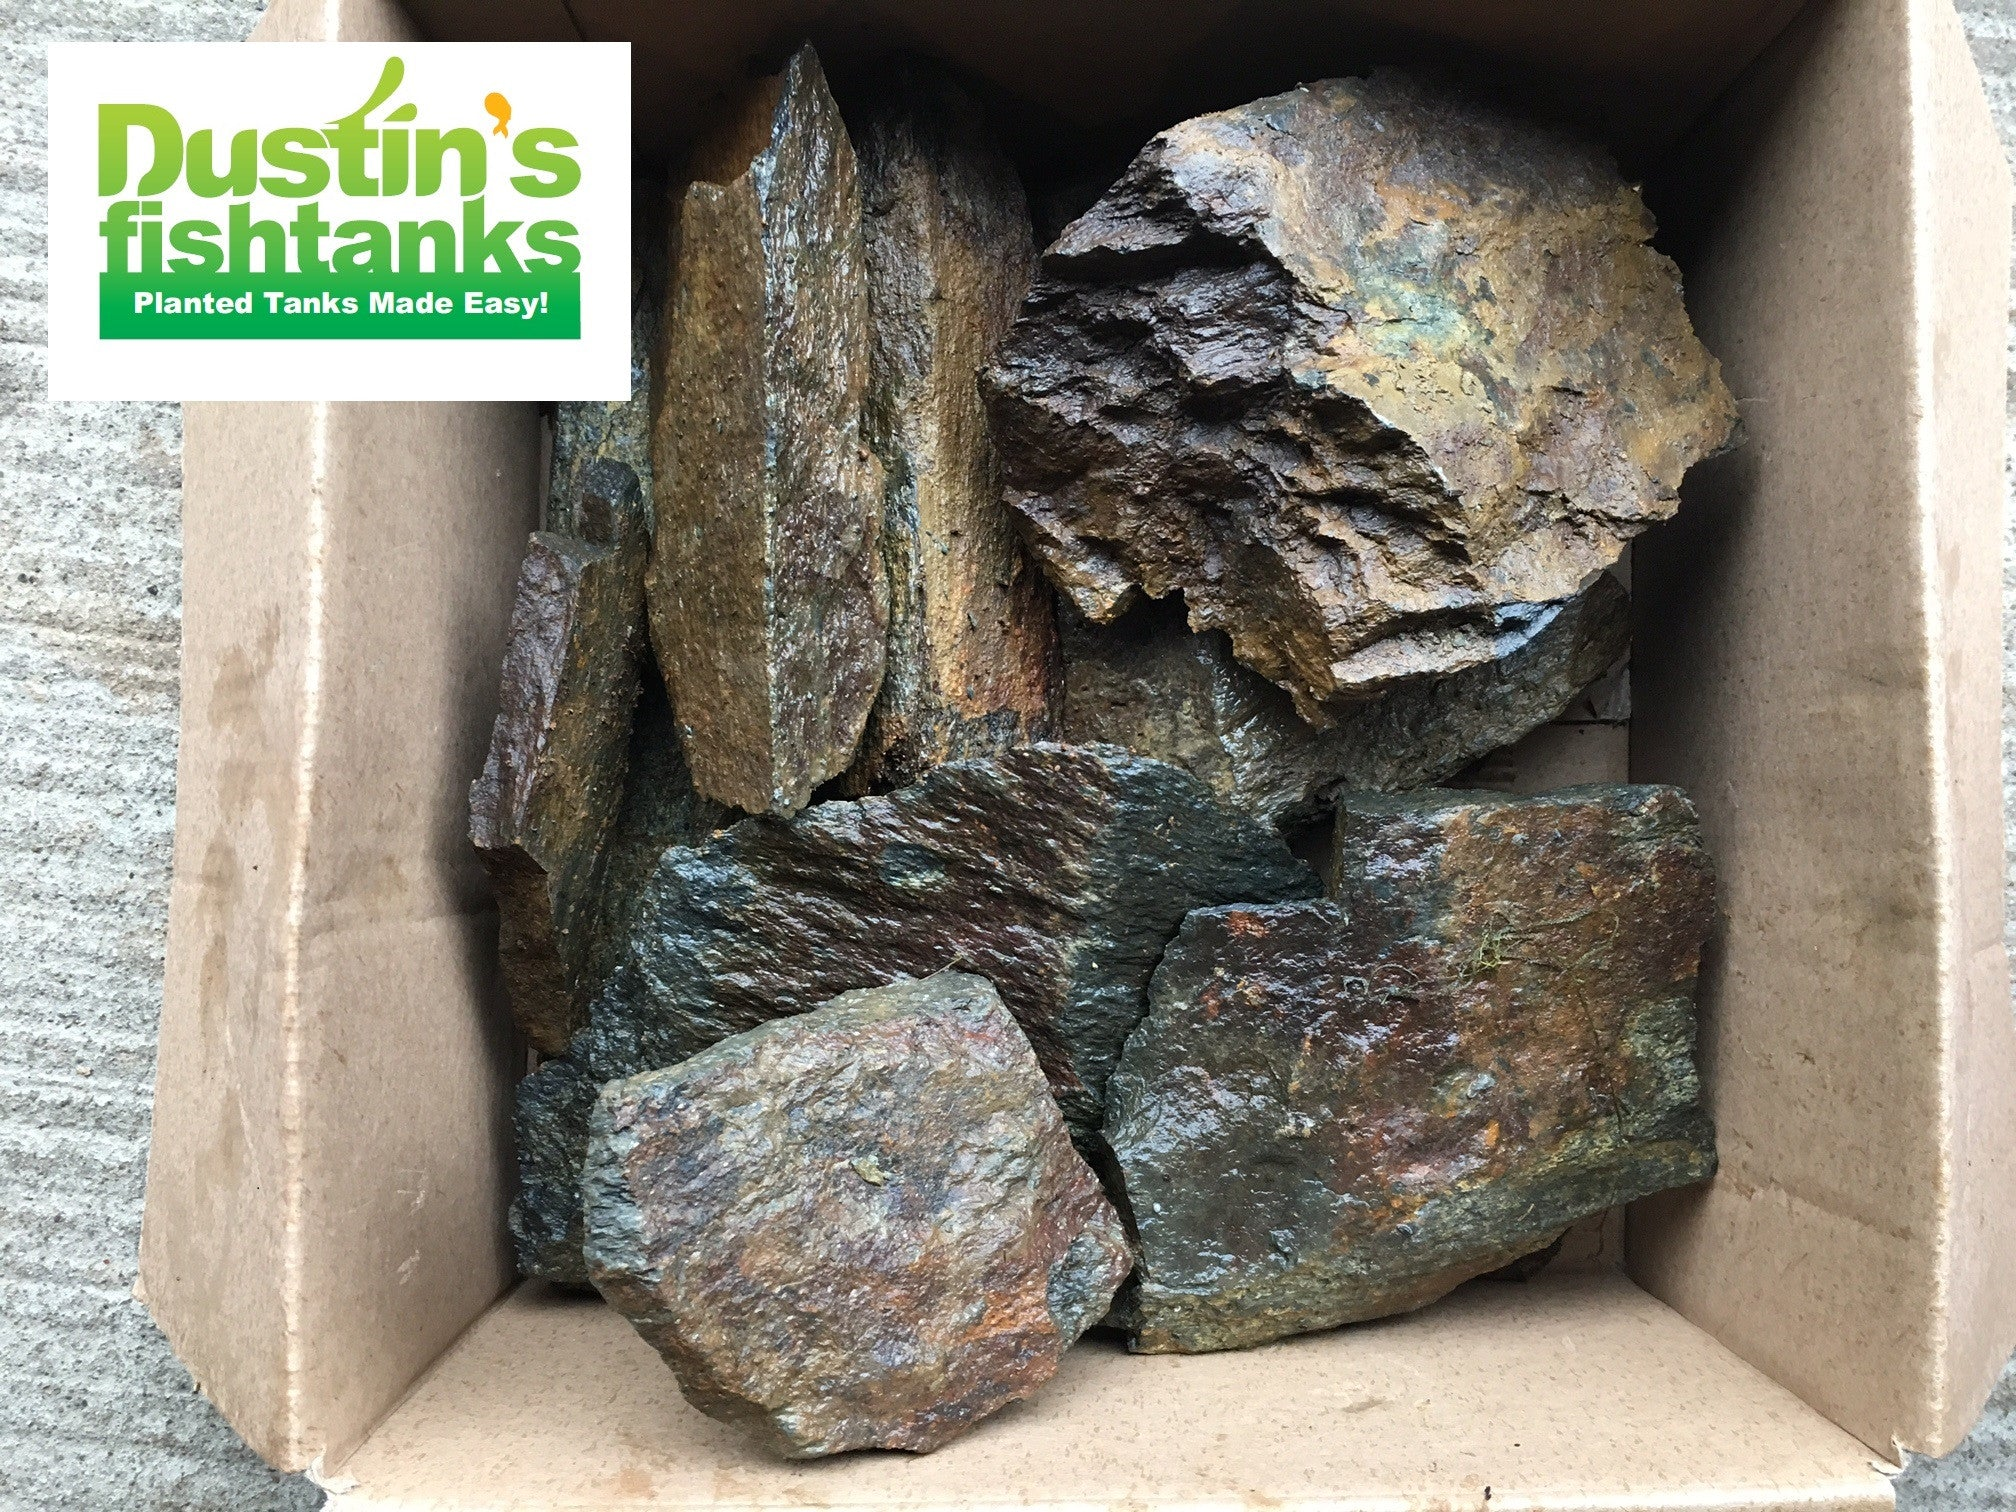 Aquascaping Rocks! – DustinsFishtanks